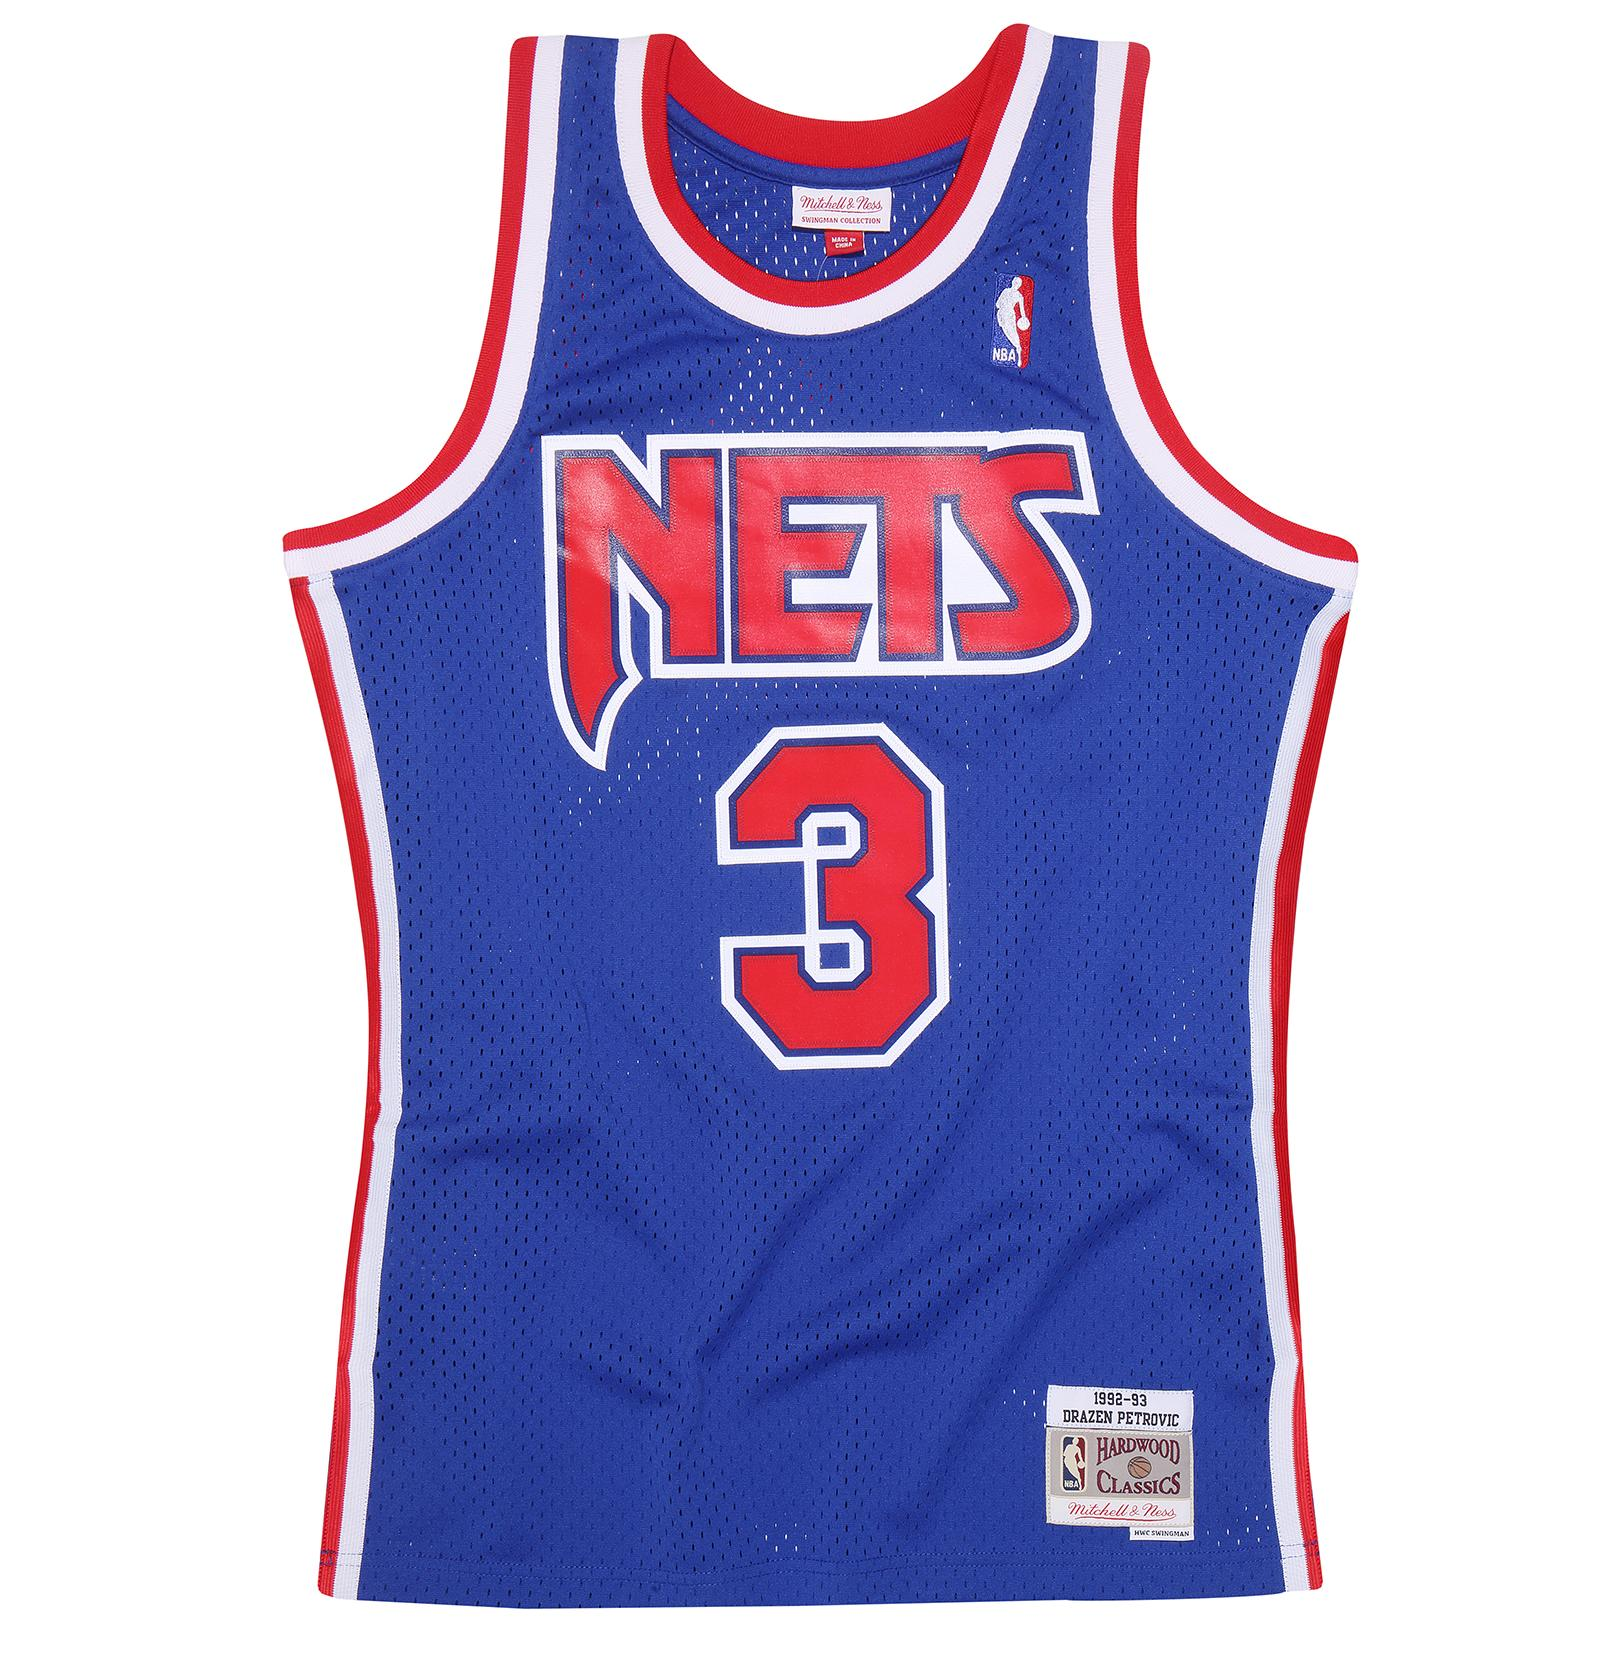 huge selection of 27469 140c4 Mitchell & Ness | Drazen Petrovic 1992-93 Road Swingman Jersey